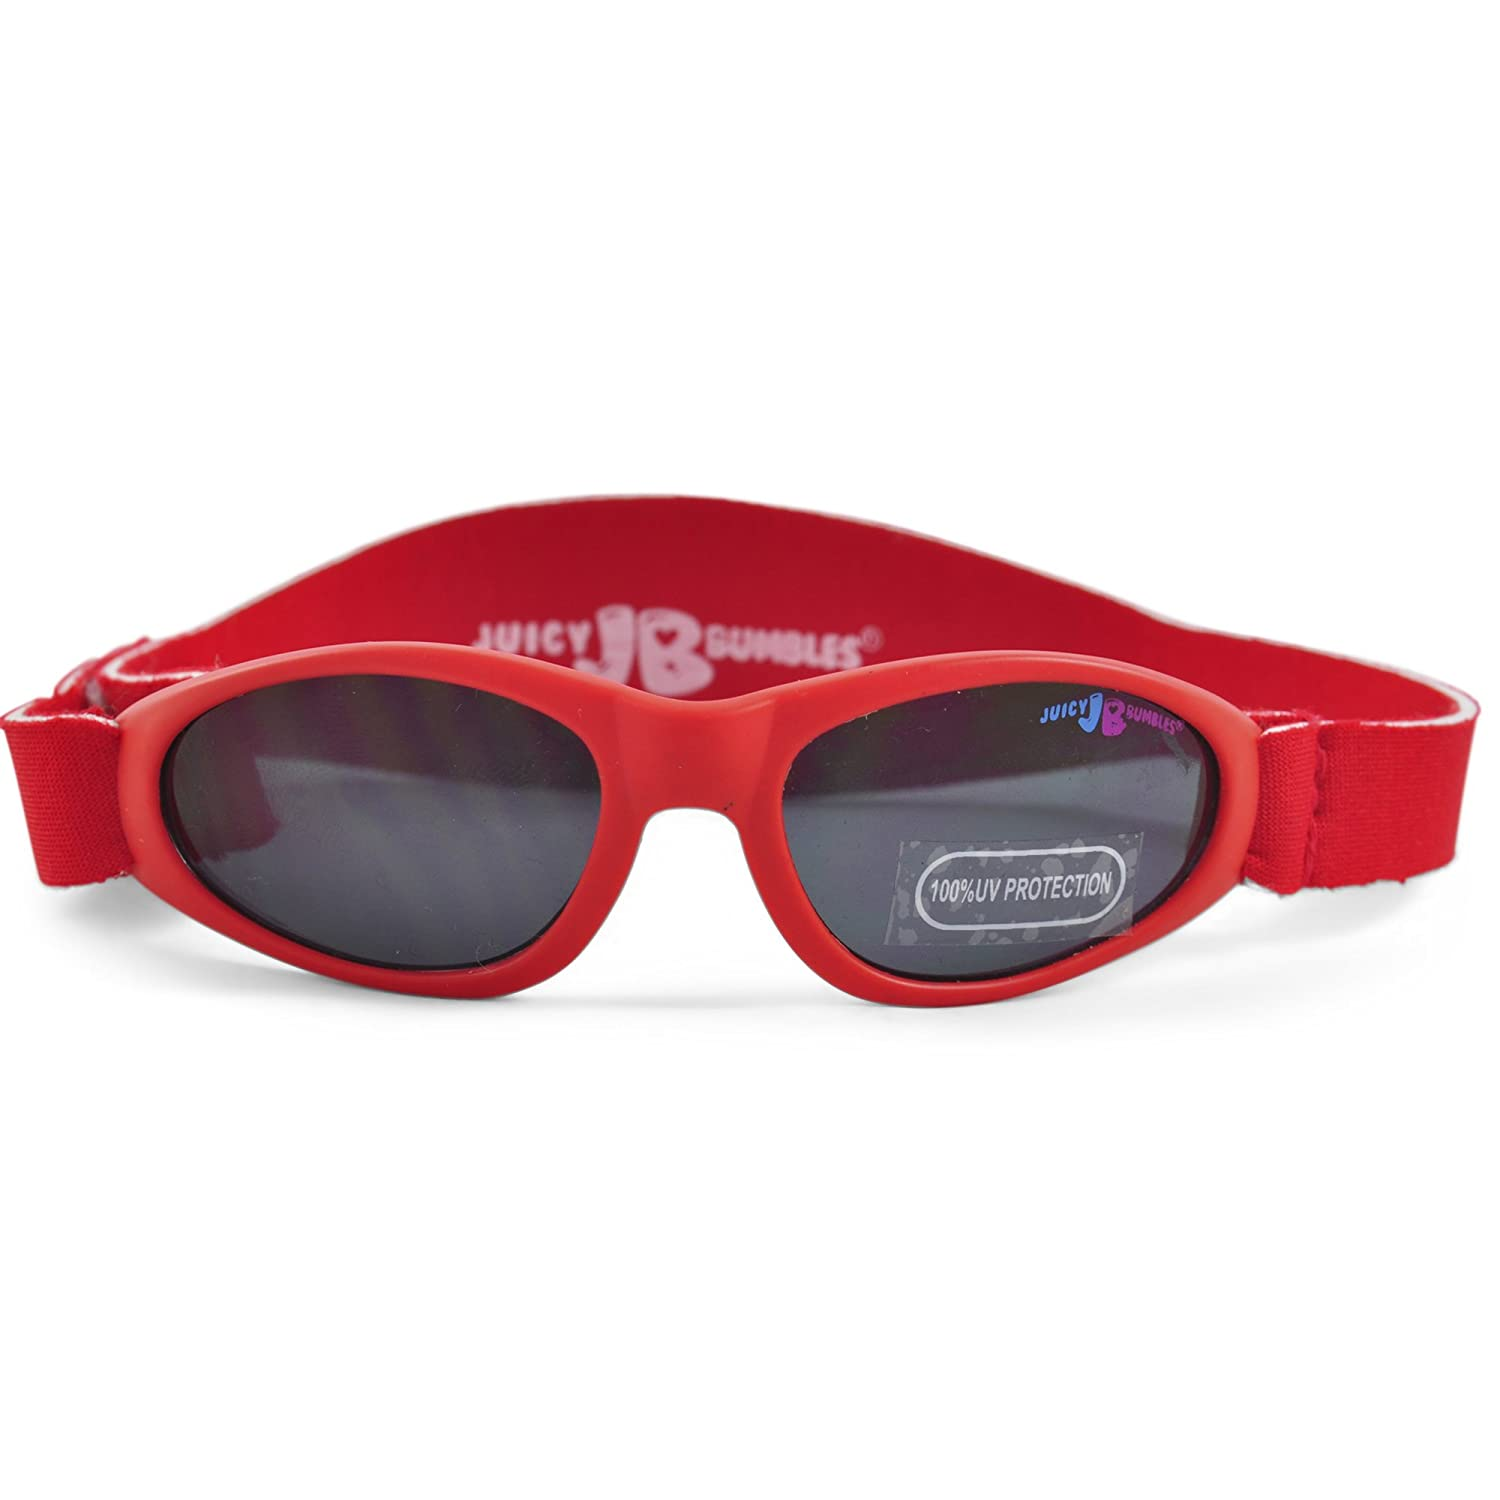 Baby Sunglasses with AdjustableStrap – Toddler Sunglasses with Carrying Case - for Baby Girls - 100% UV Protection – 3 to 18 Months Juicy Bumbles SUNG-Red